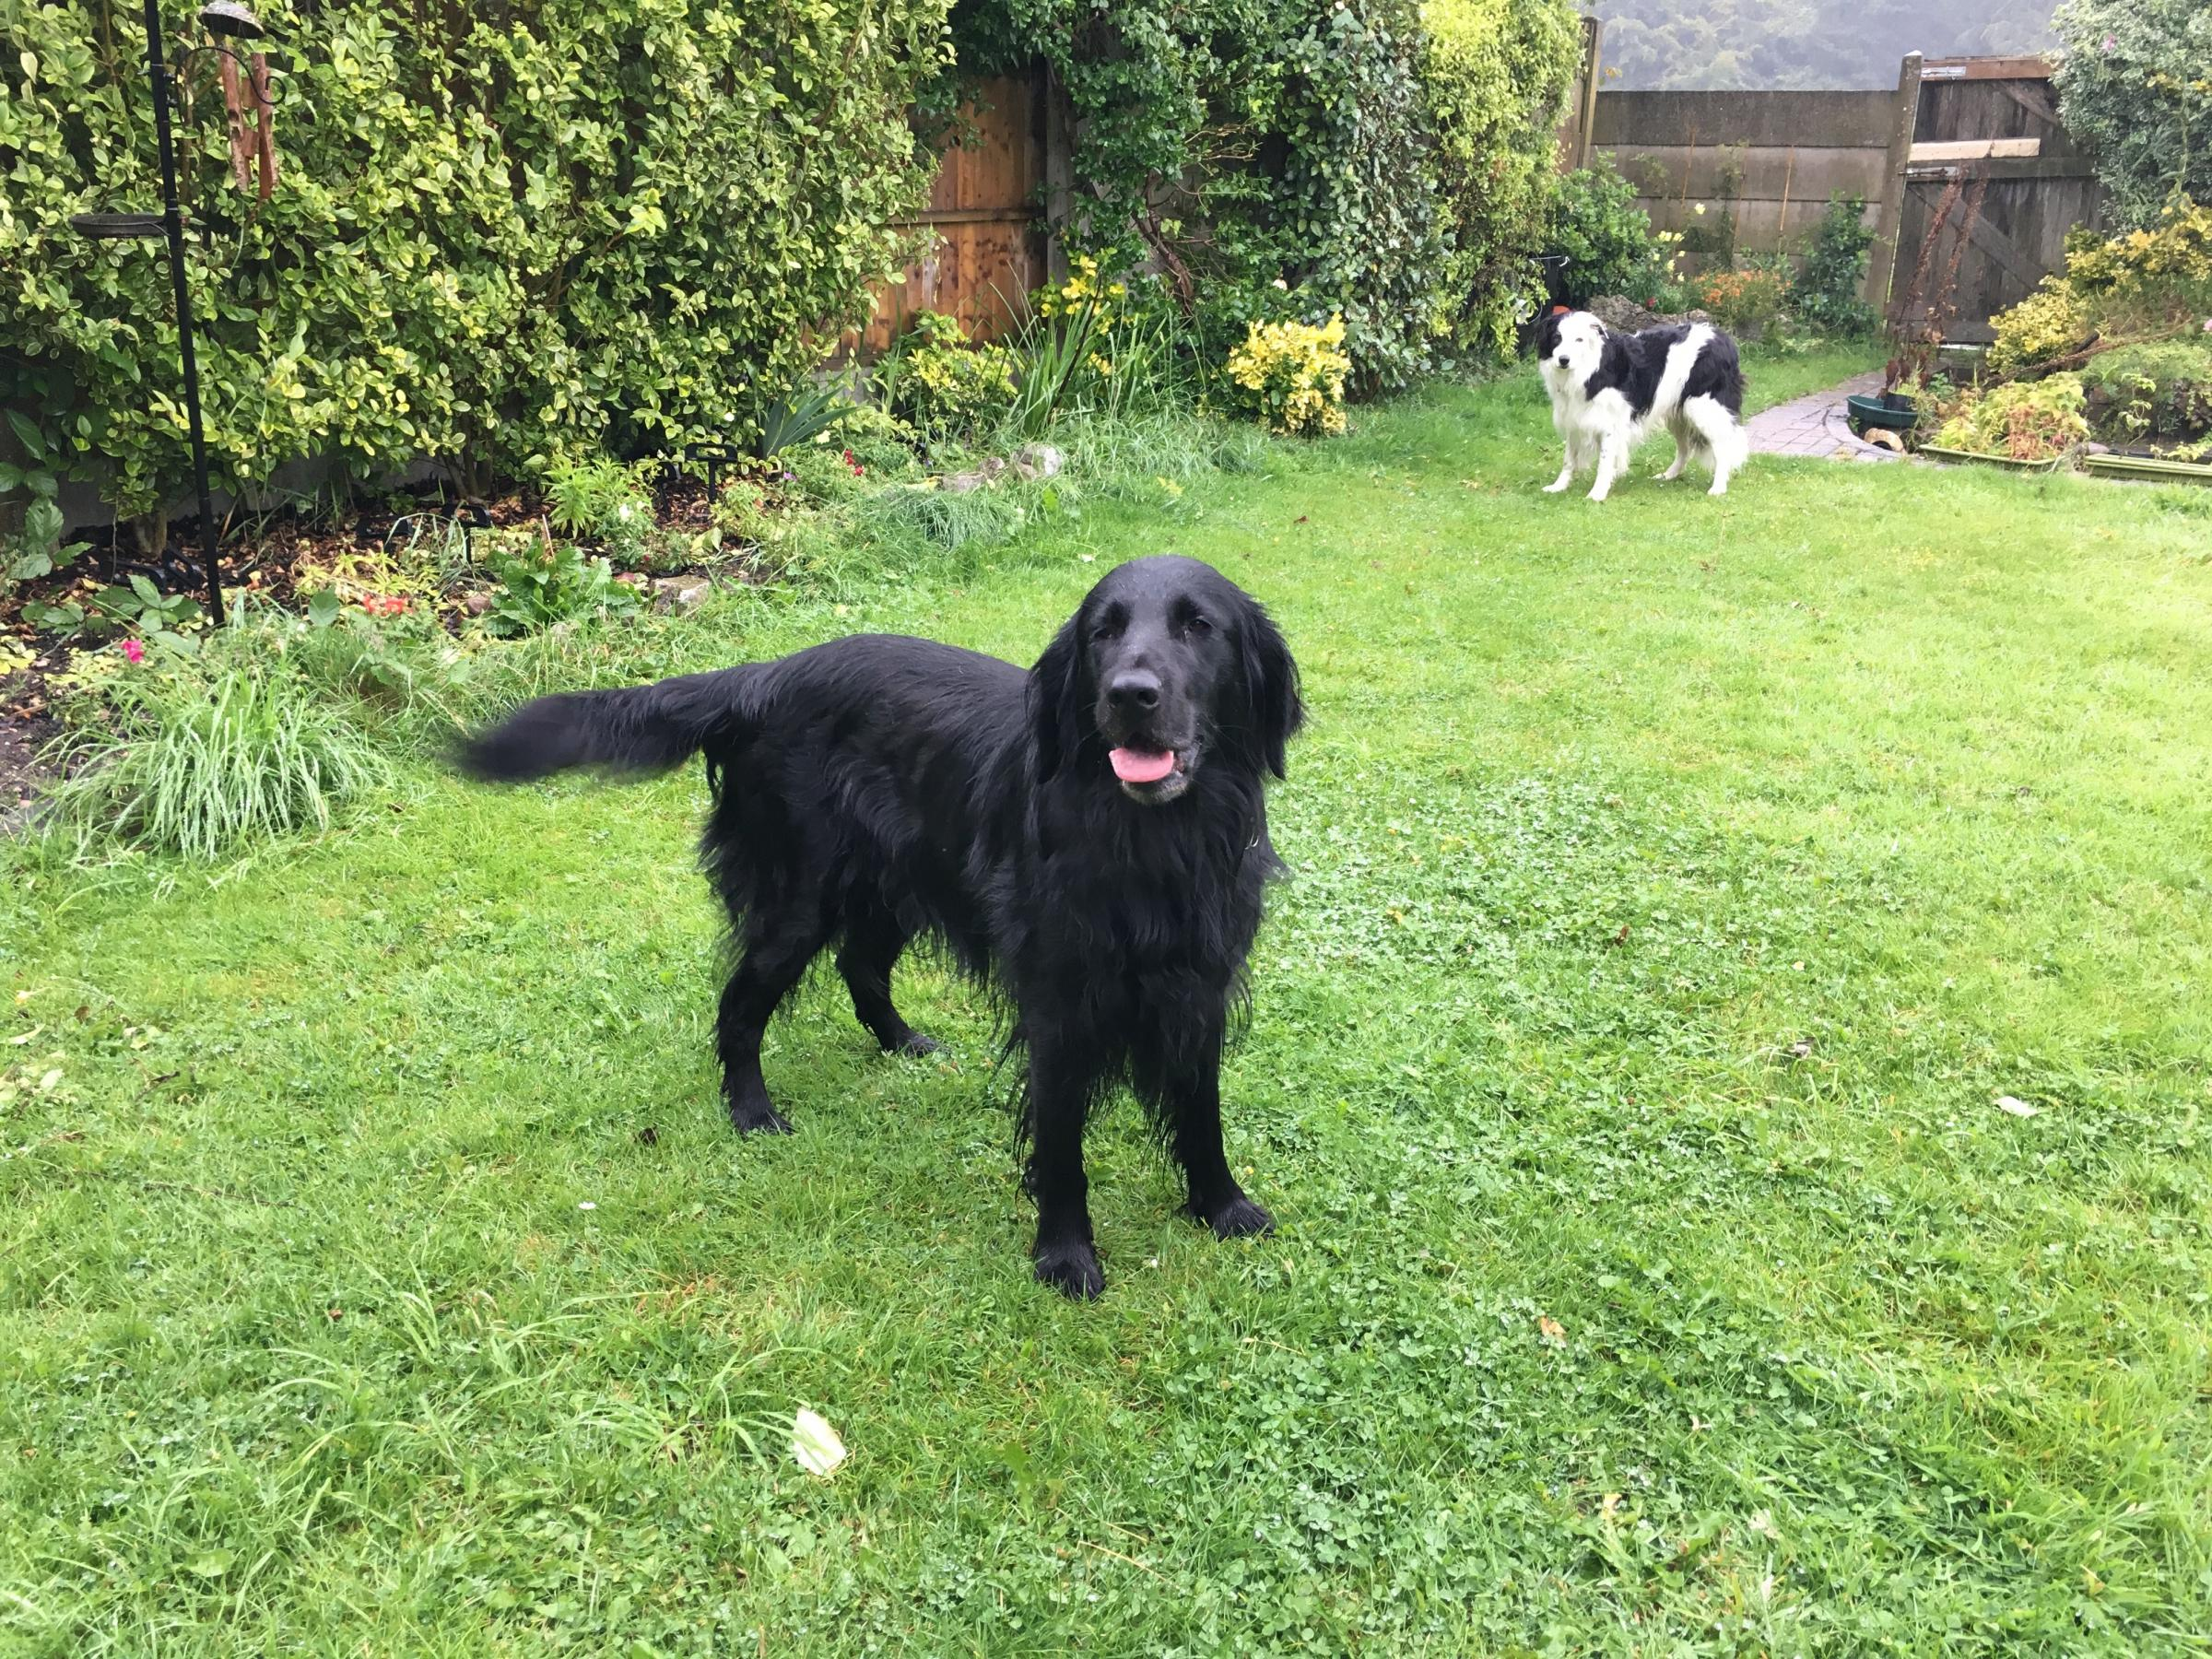 Border Collie and Flat Coated Retriever need a loving new home together, says RSPCA Worcester & Mid-Worcestershire Branch